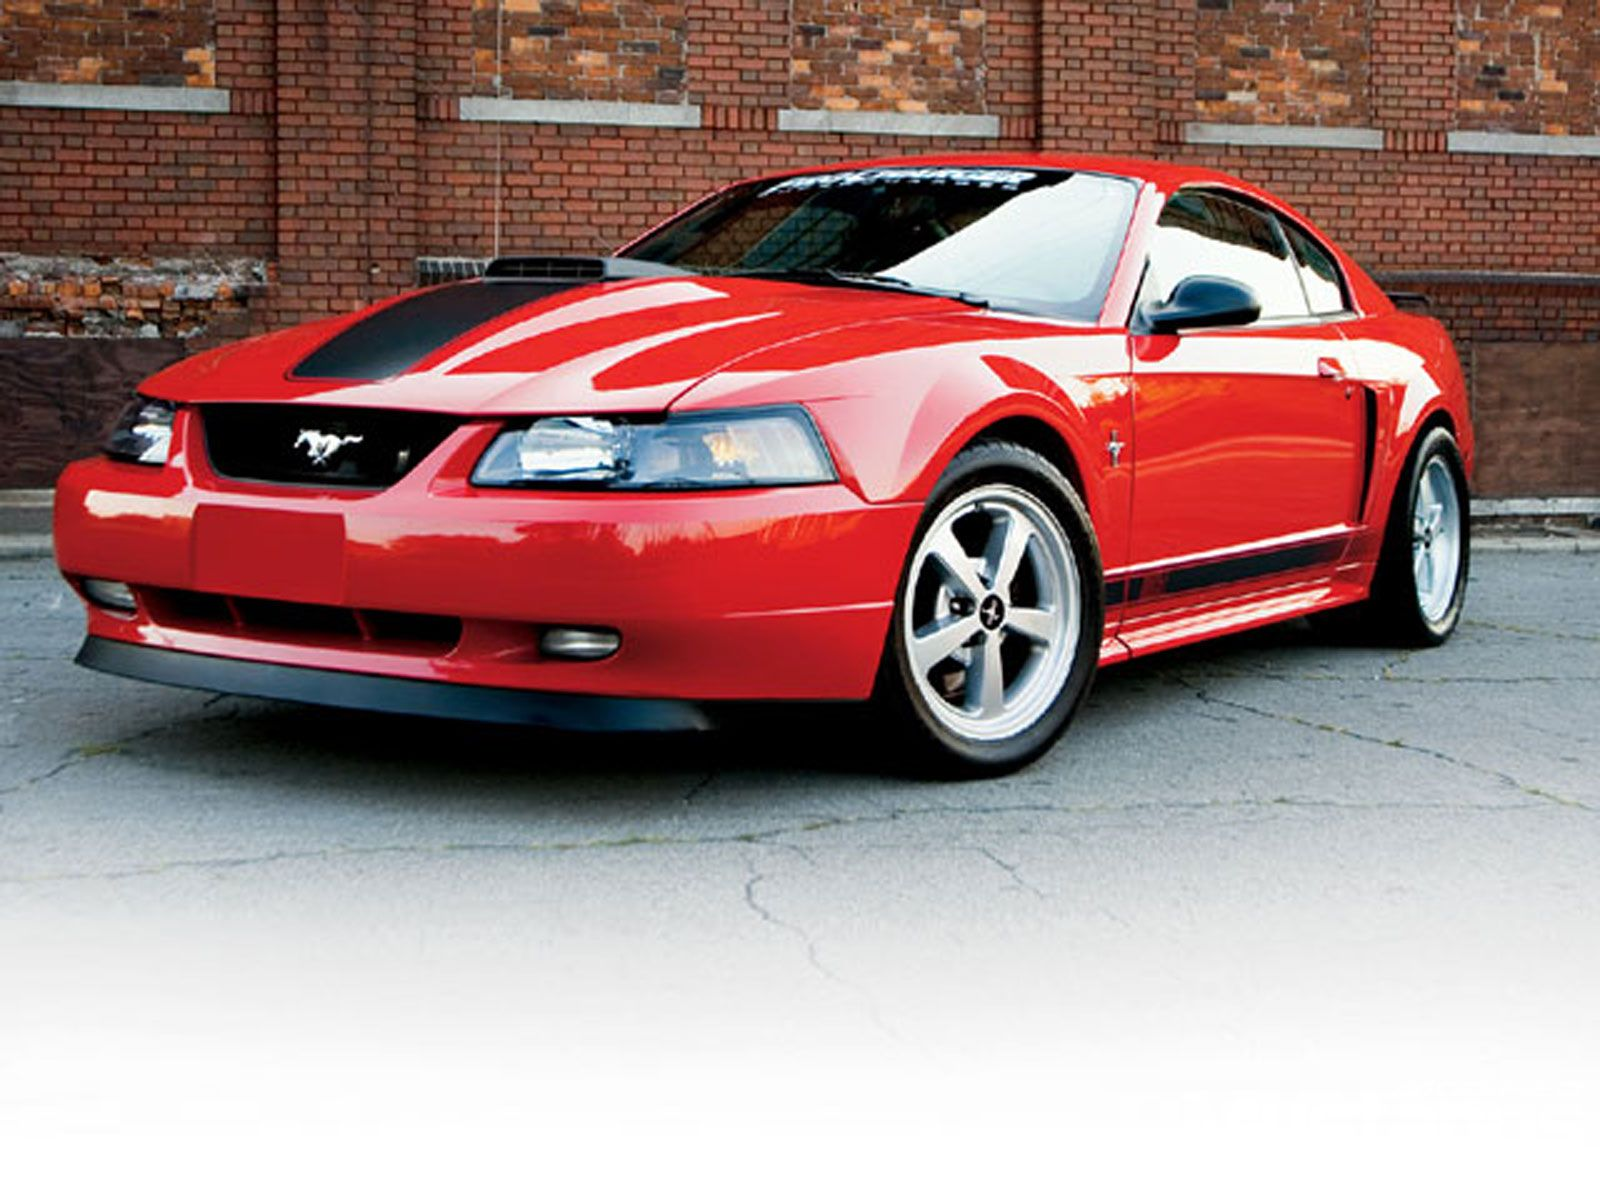 2003 ford mustang mach i miss mine like crazy